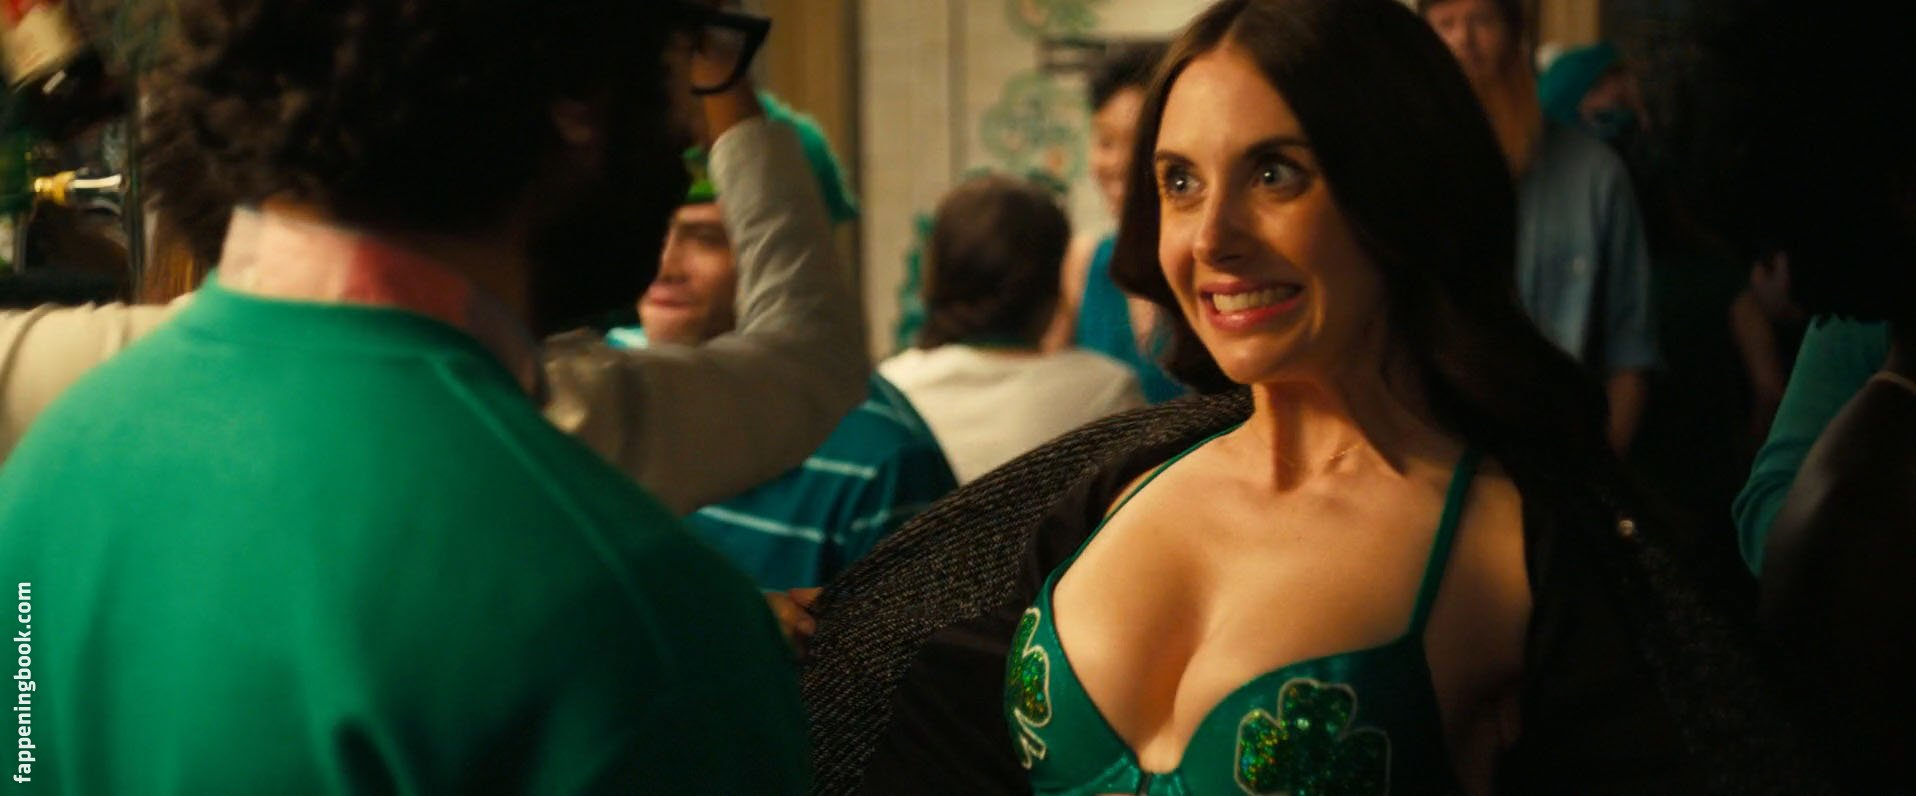 Alison Brie Leaked Nude Photos alison brie nude, sexy, the fappening, uncensored - photo